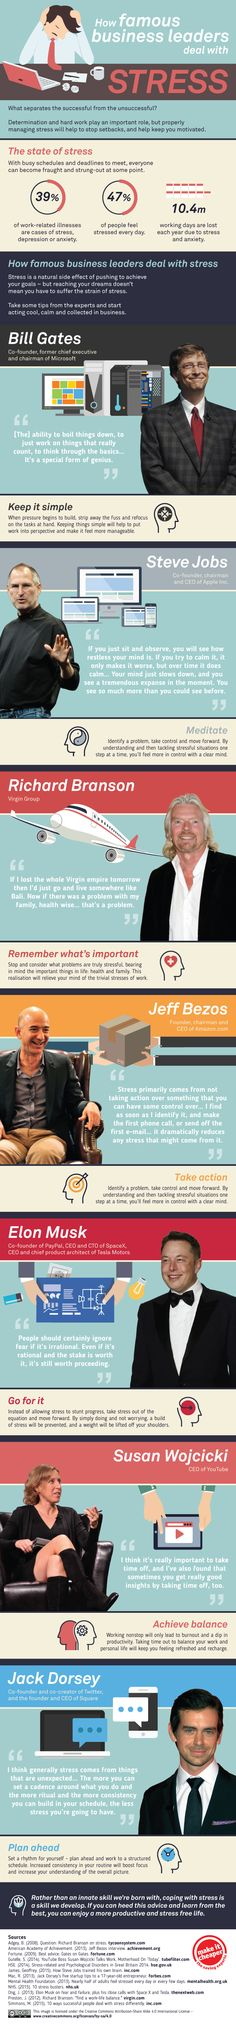 How Bill Gates, Elon Musk and Richard Branson Cope With Stress (Infographic)